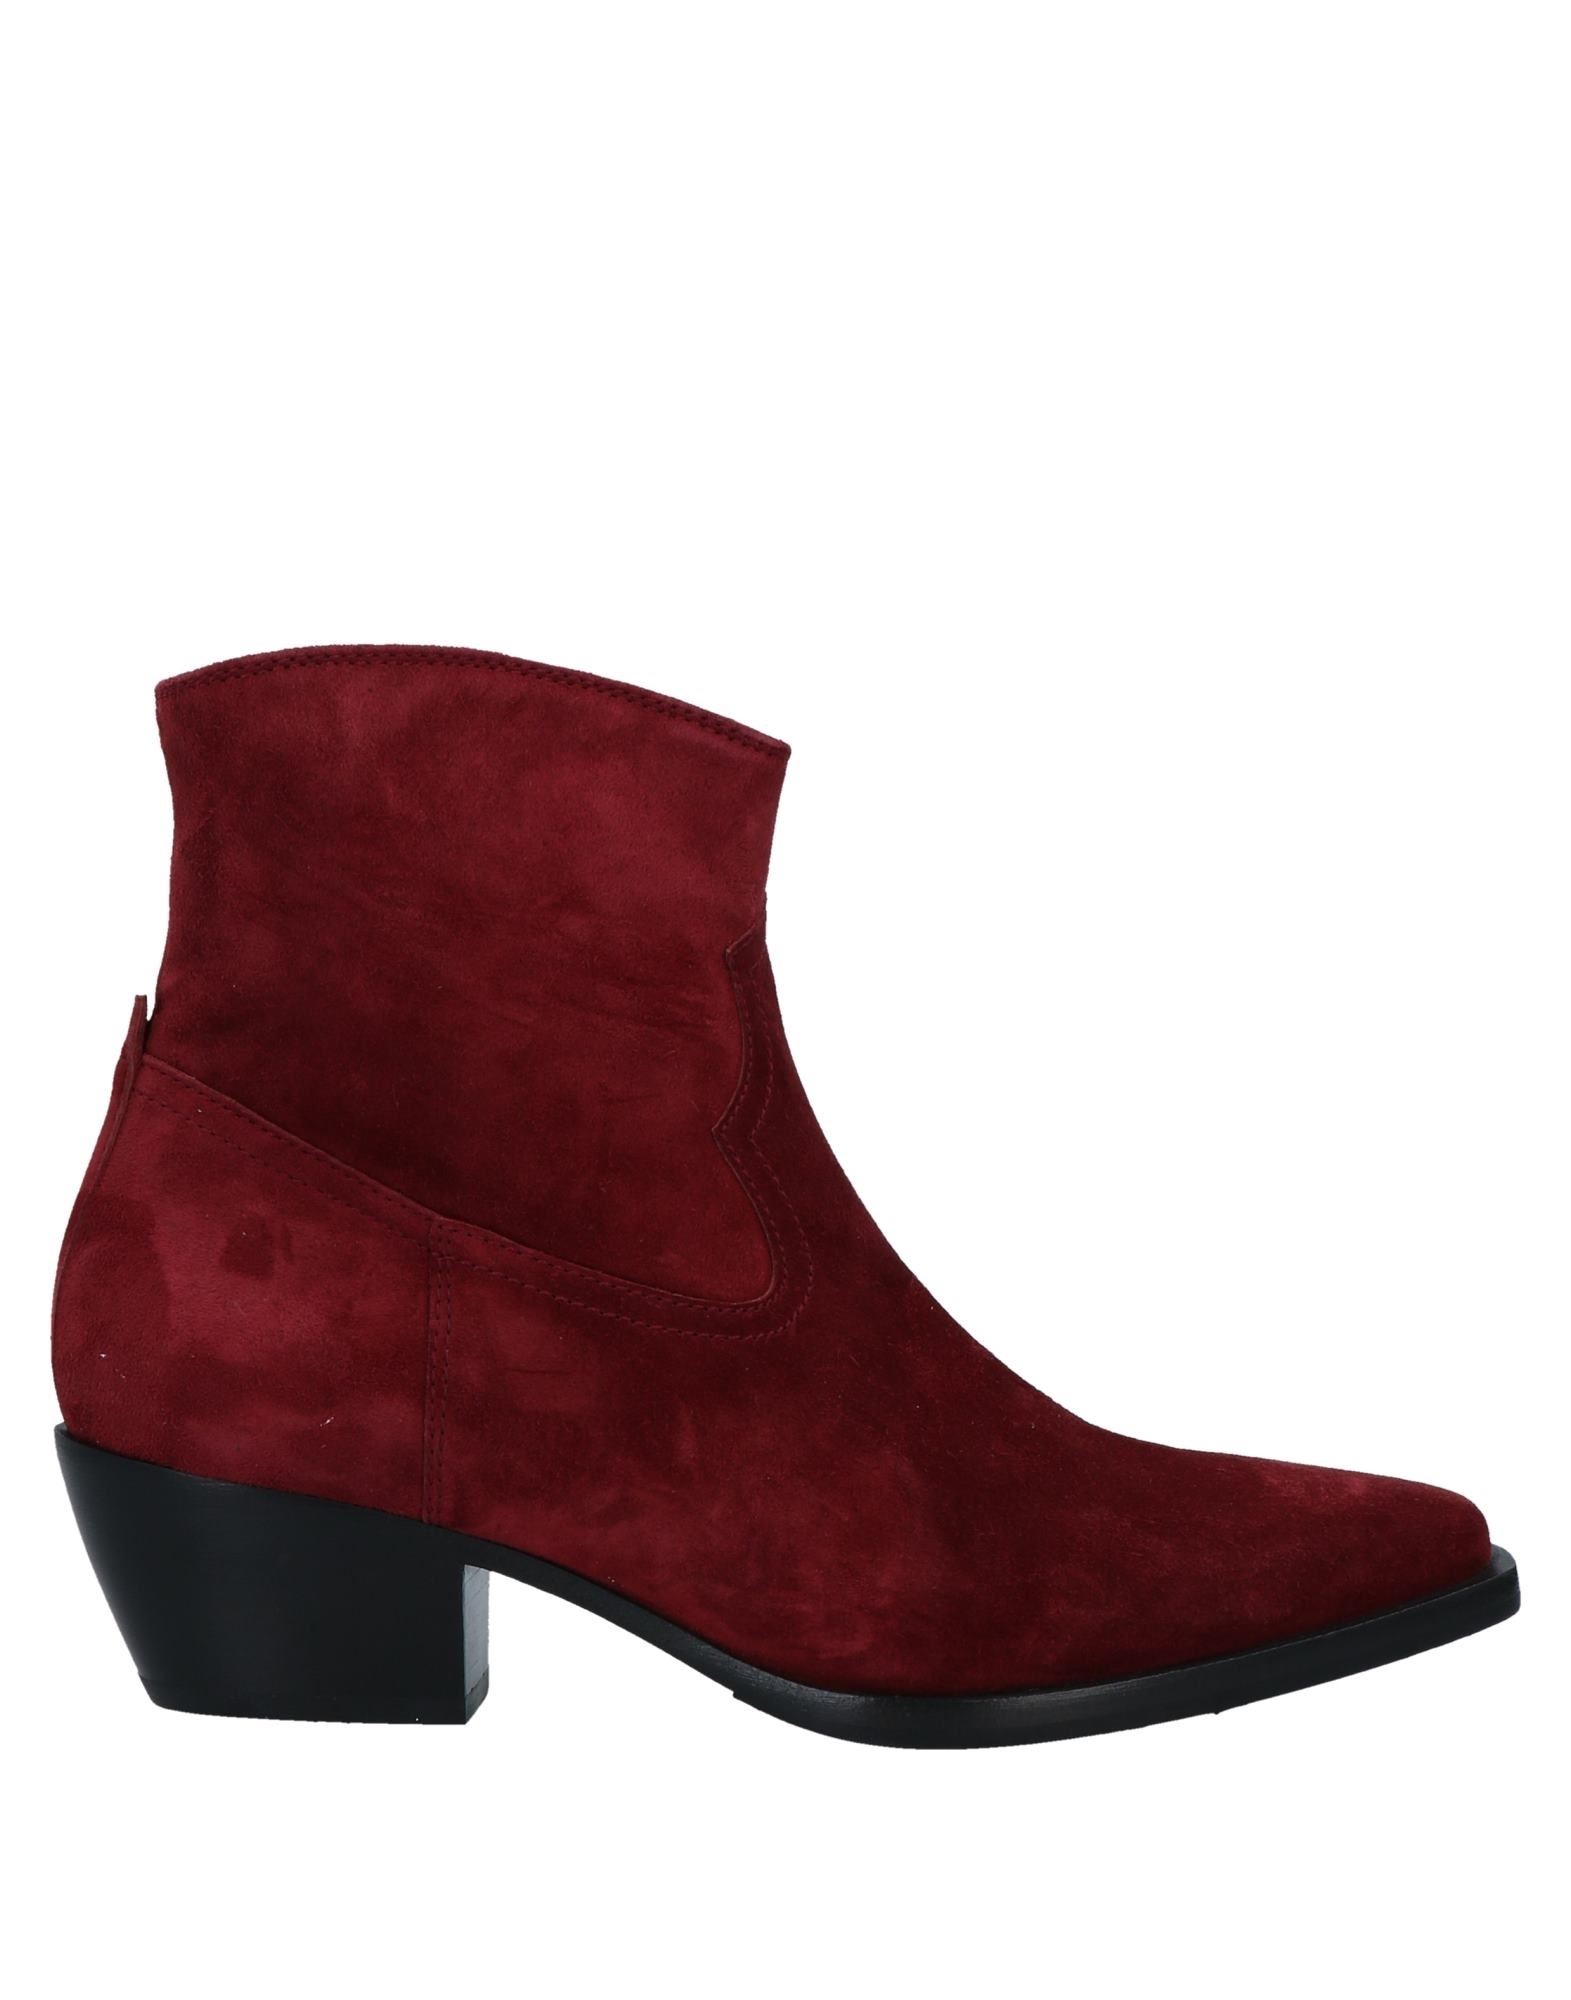 Henderson Baracco Ankle Boots In Maroon